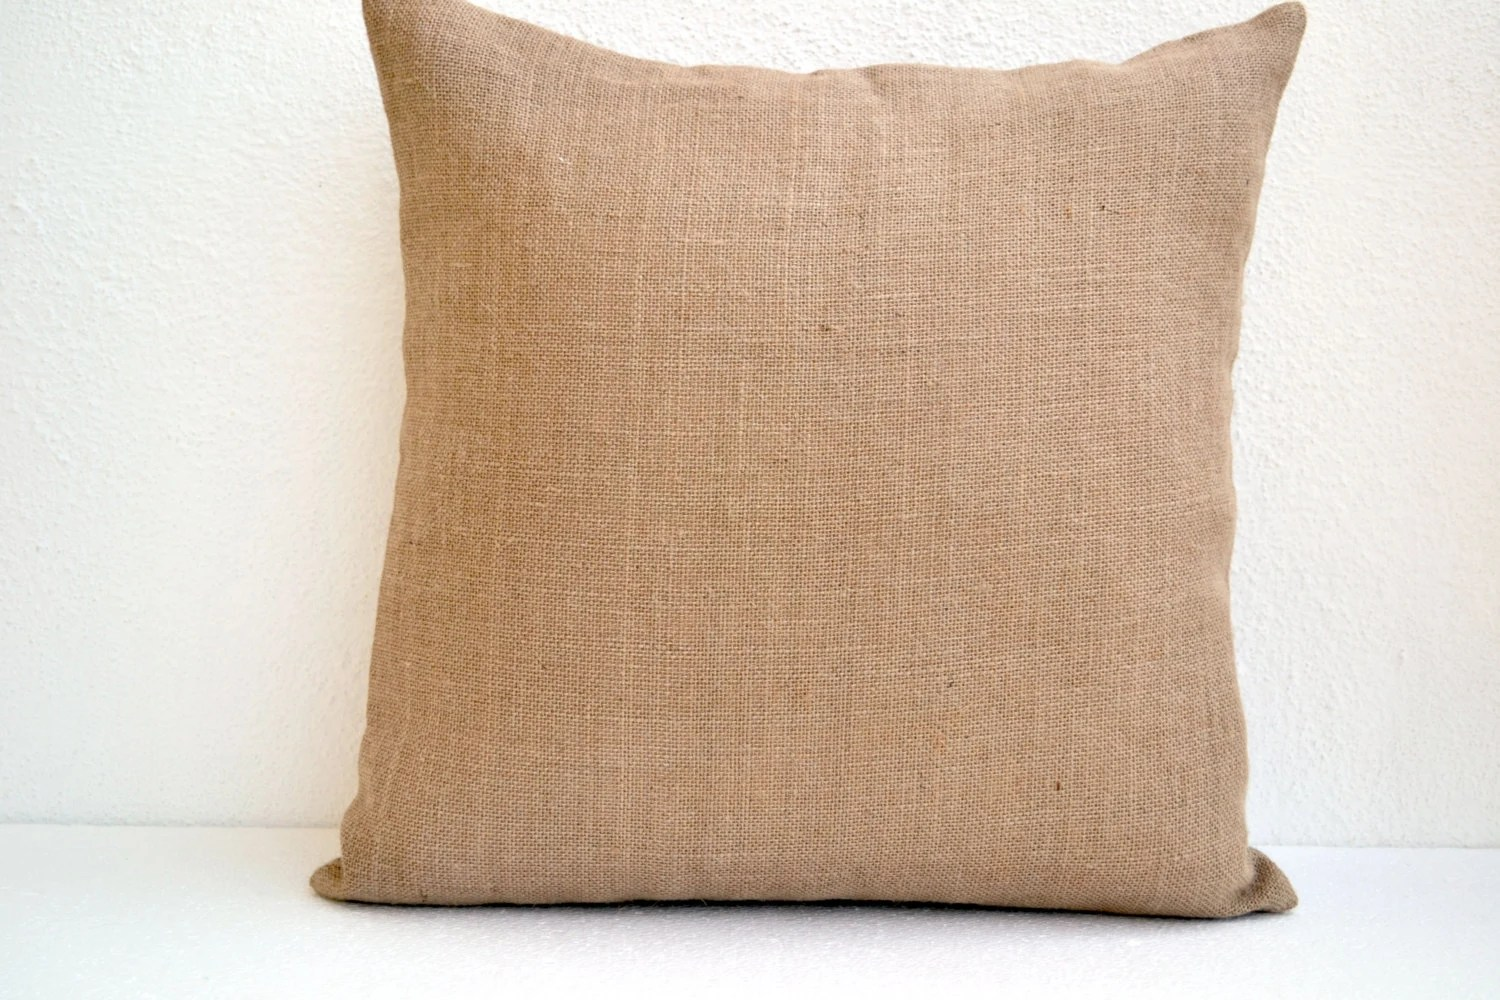 Burlap Chair Cushions Natural Burlap Pillow Cover Button Closure Decorative Throw